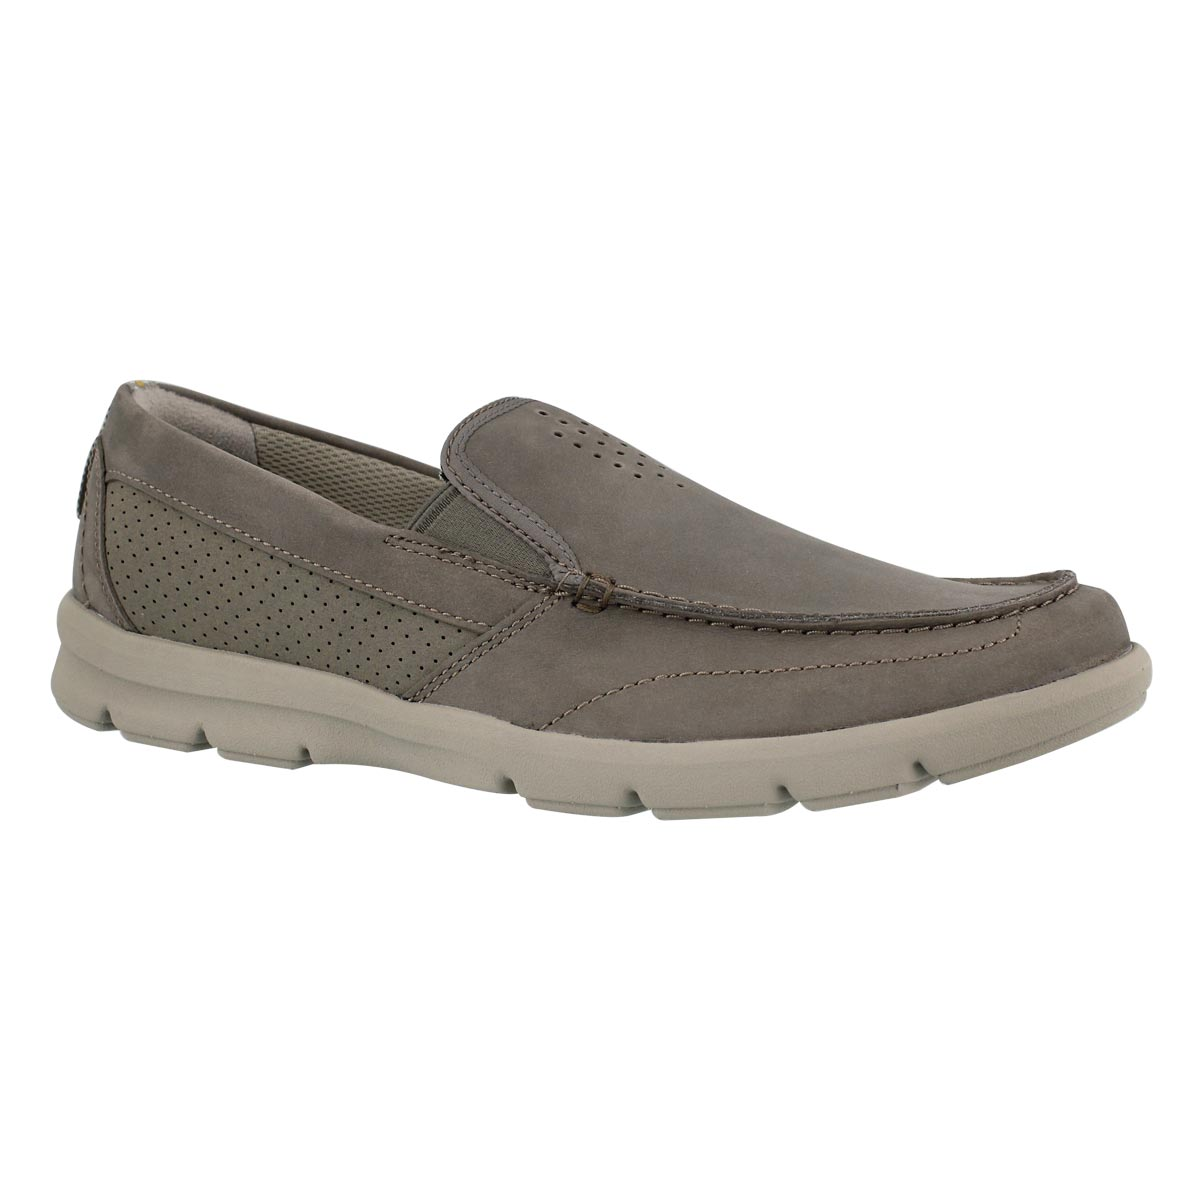 Men's JARWIN RACE sage casual slip on shoes